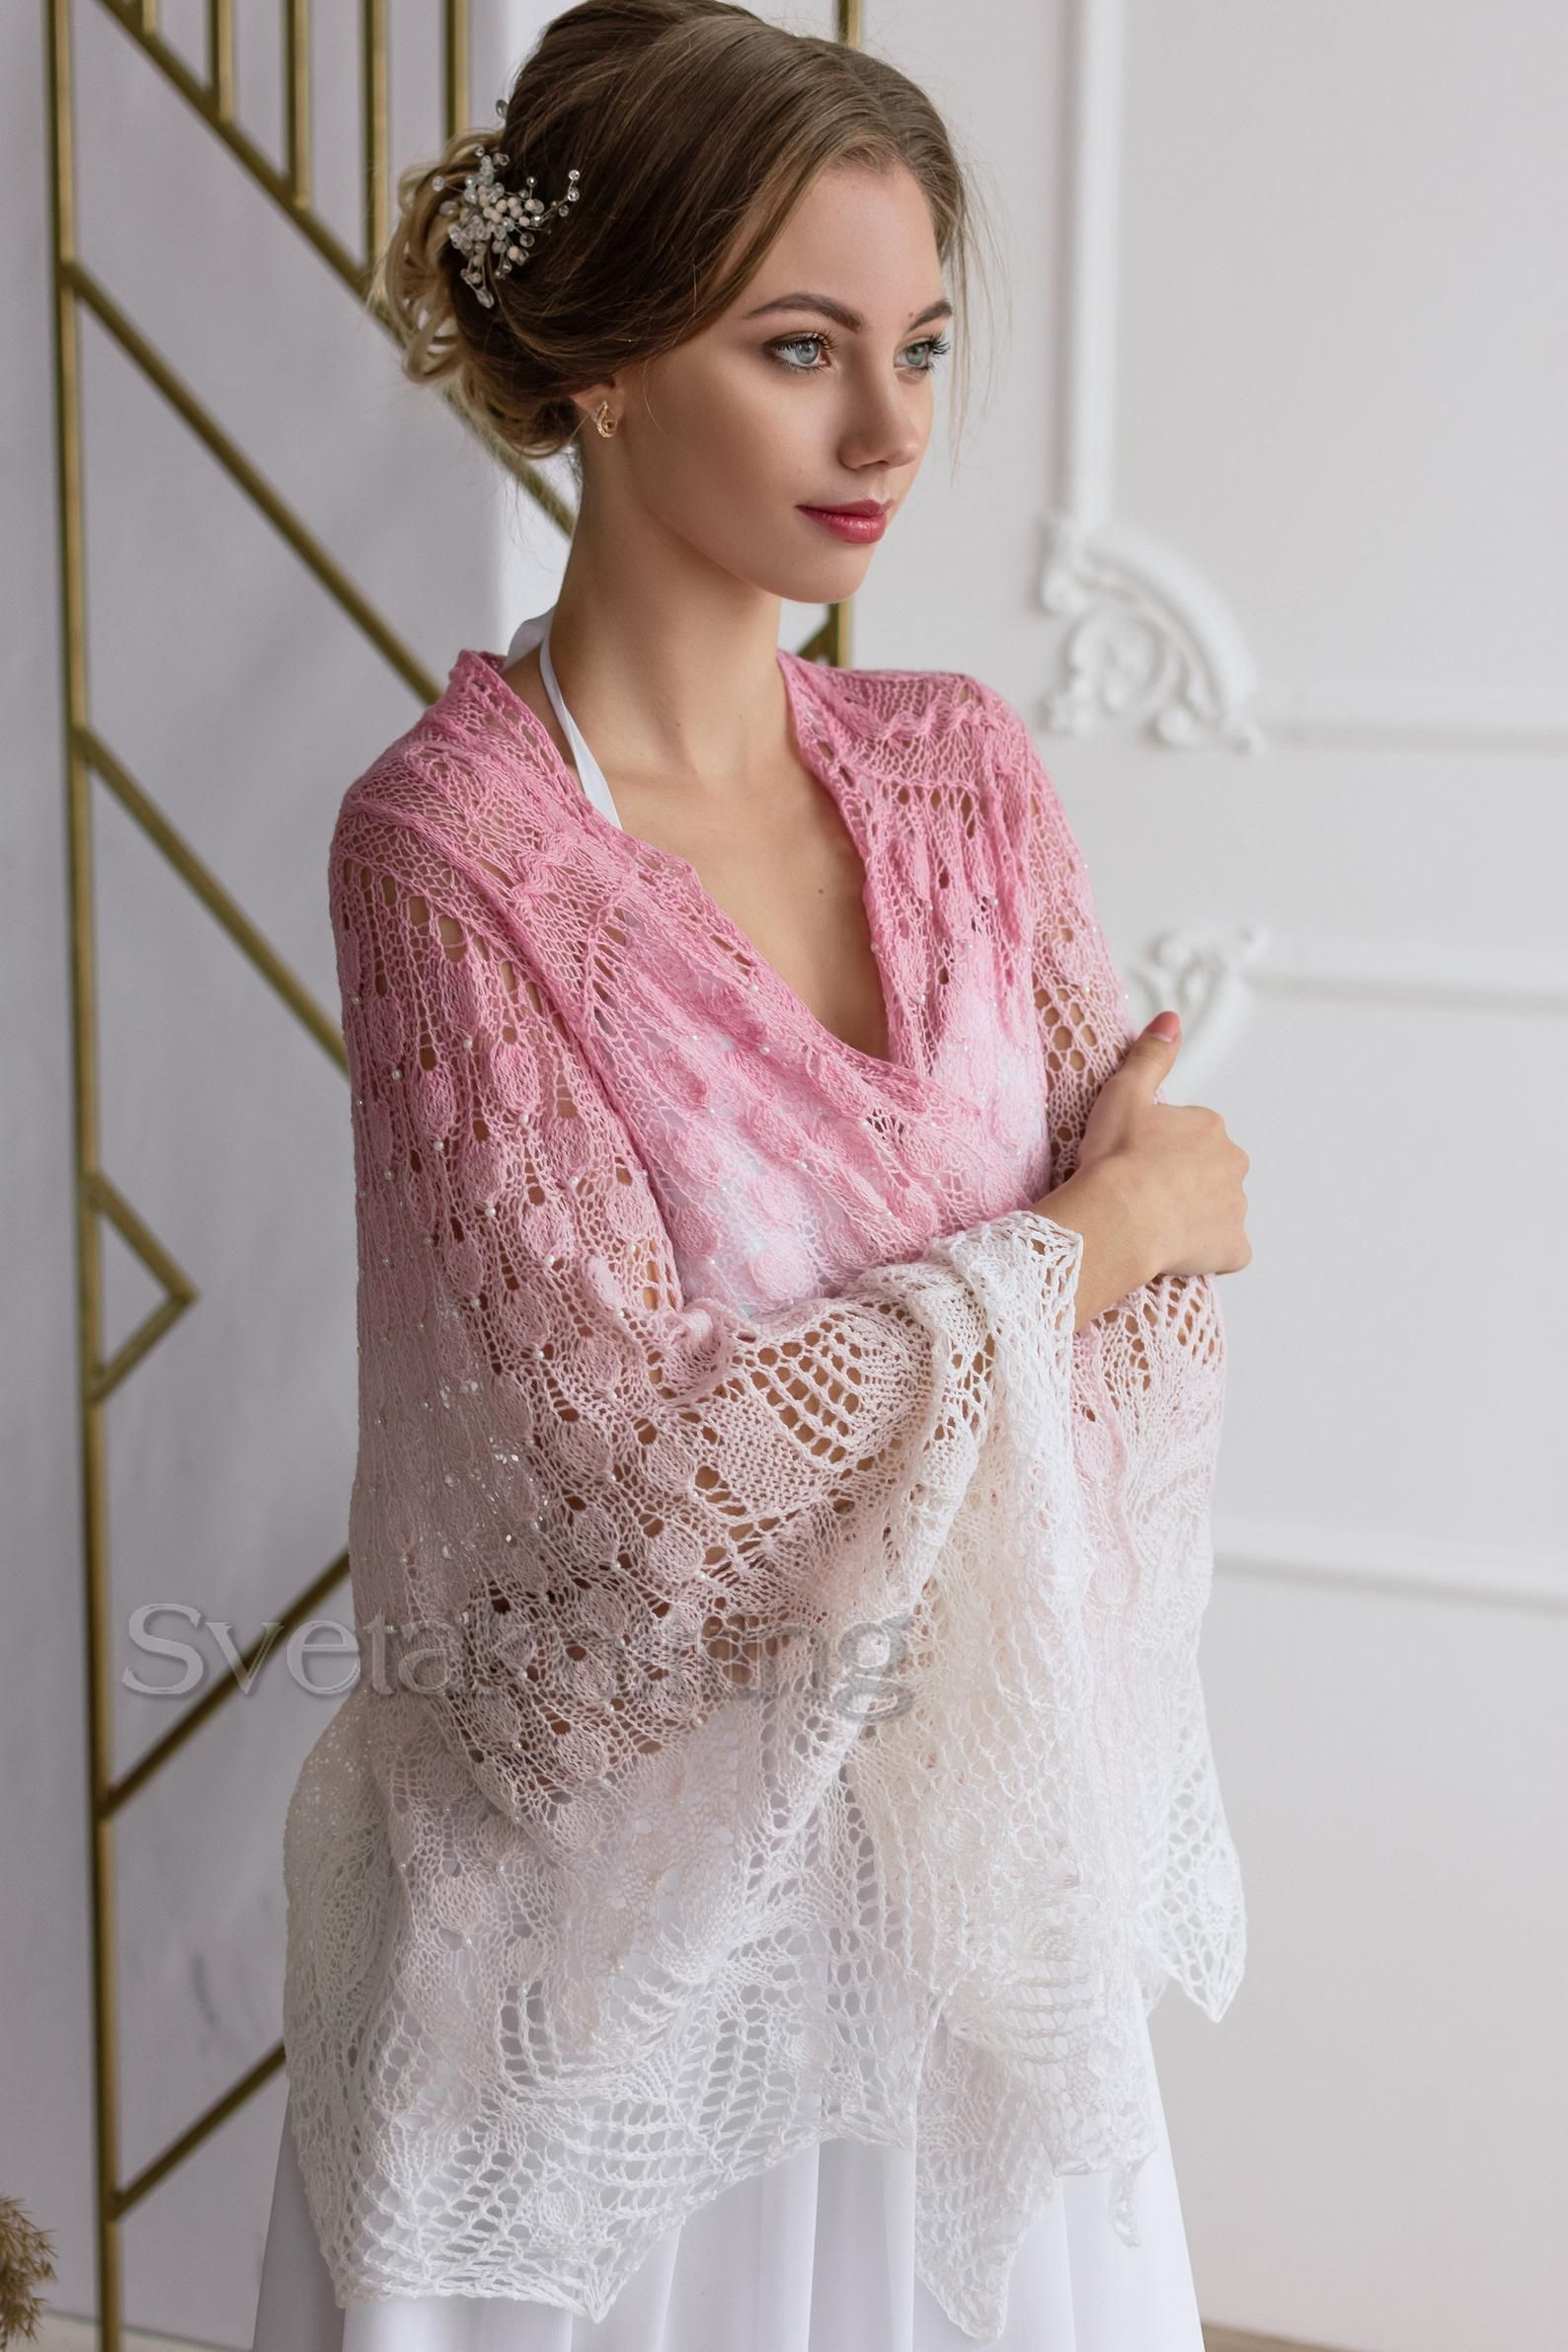 Wedding Shawls And Wraps Knitted Wedding Lace Shawl Gift For Etsy In 2020 Wedding Shawl Bridal Lace Mother Of Groom Dresses